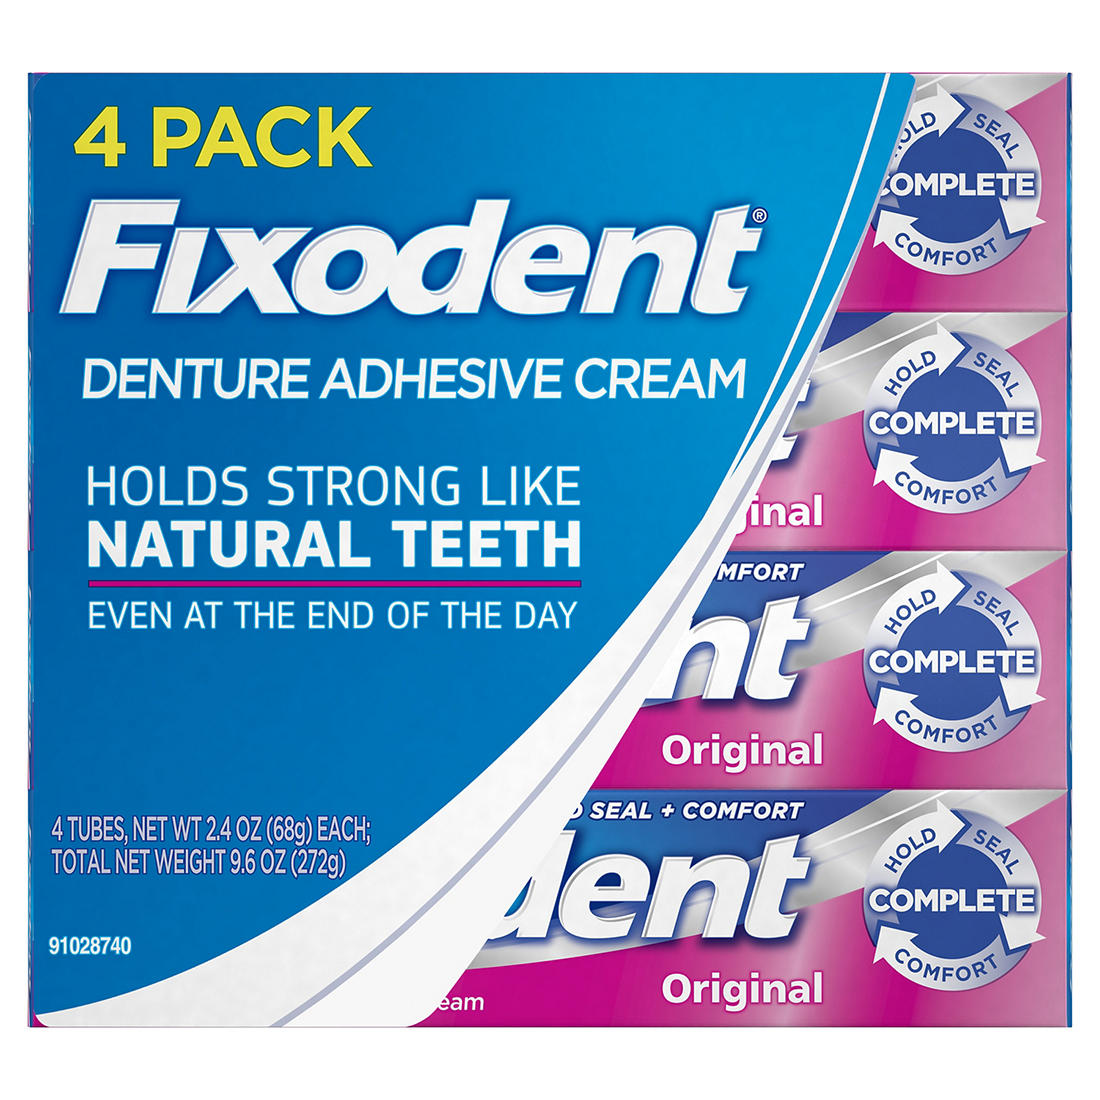 graphic regarding Fixodent Coupons Printable known as Fixodent Detailed Primary Denture Adhesive Product, 4 pk./2.4 oz.